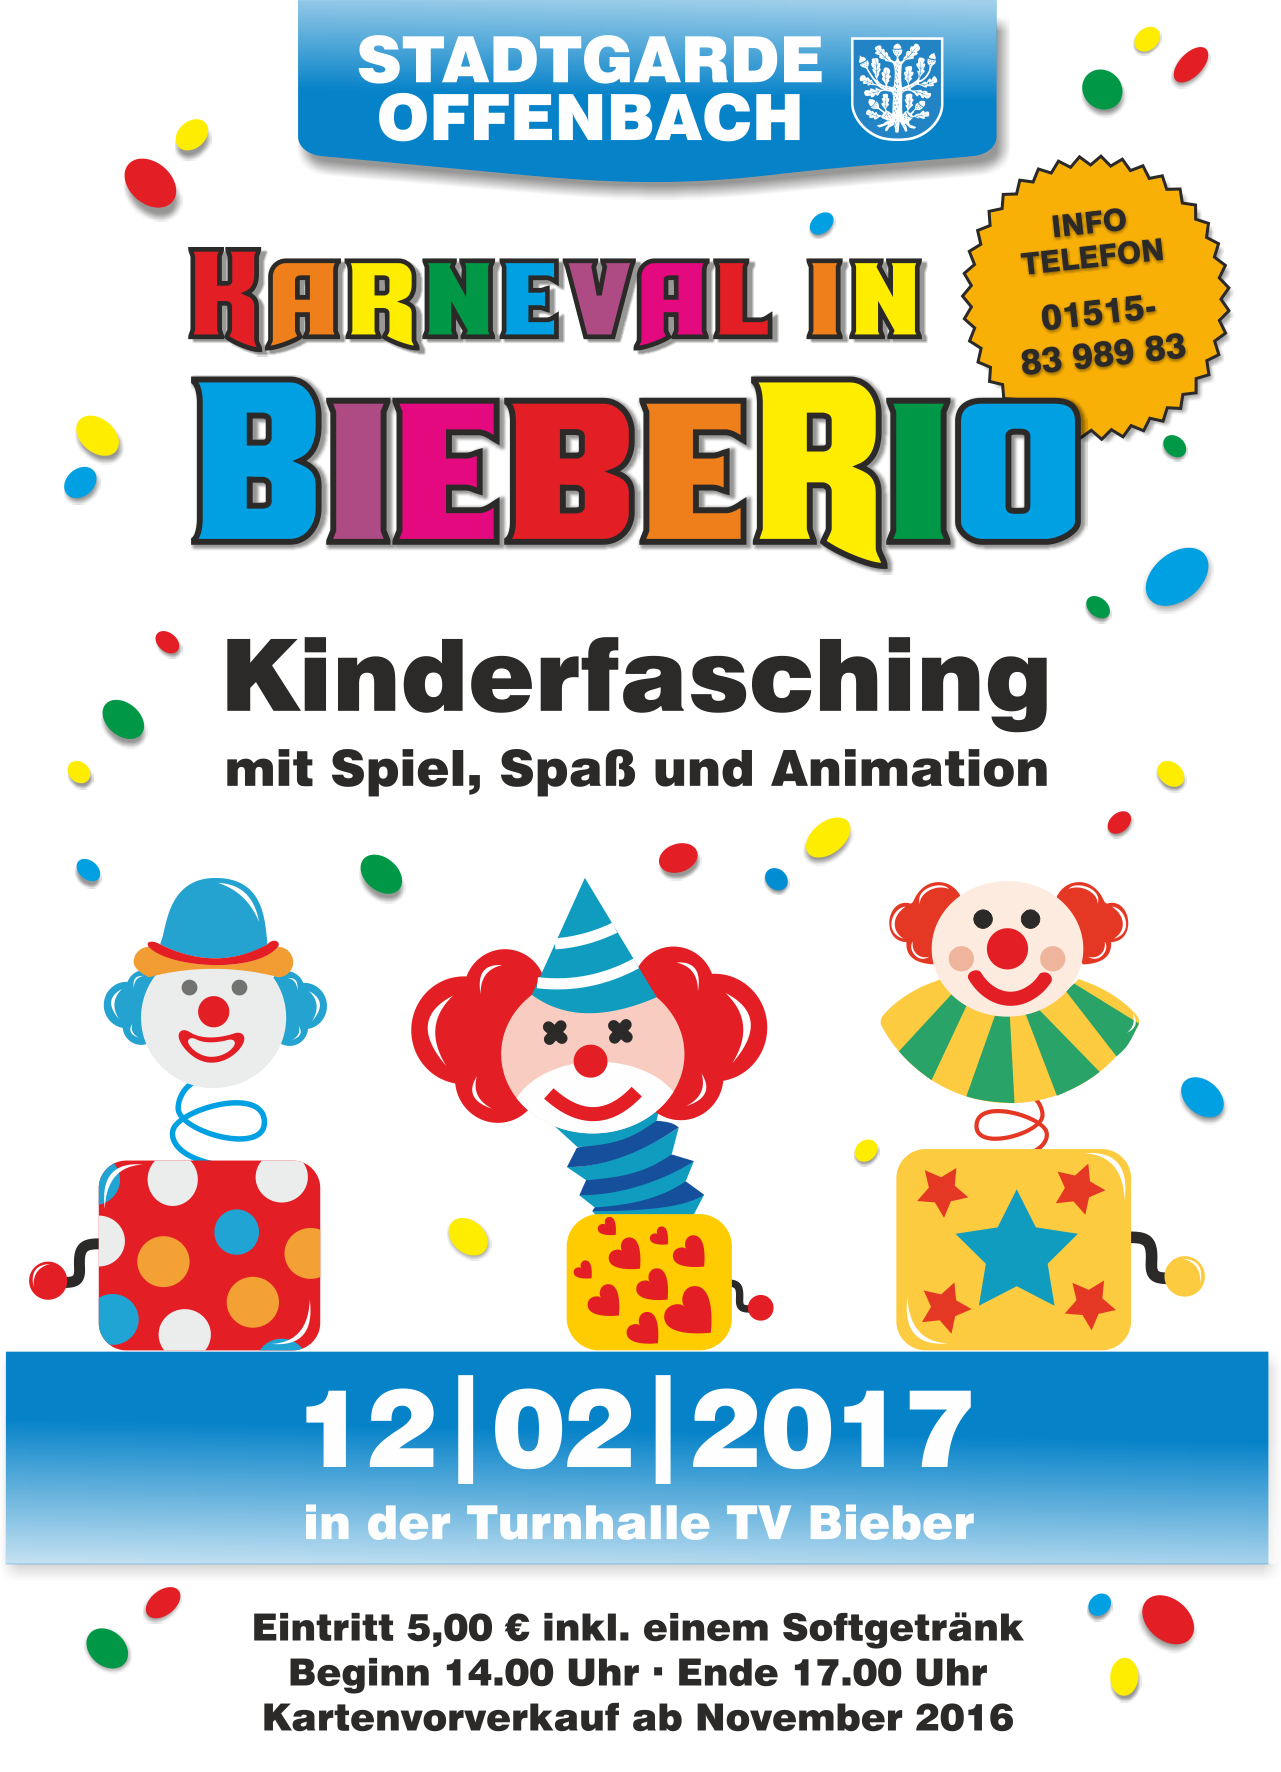 Flyer 2017 Kinderfasching Stadtgarde Offenbach